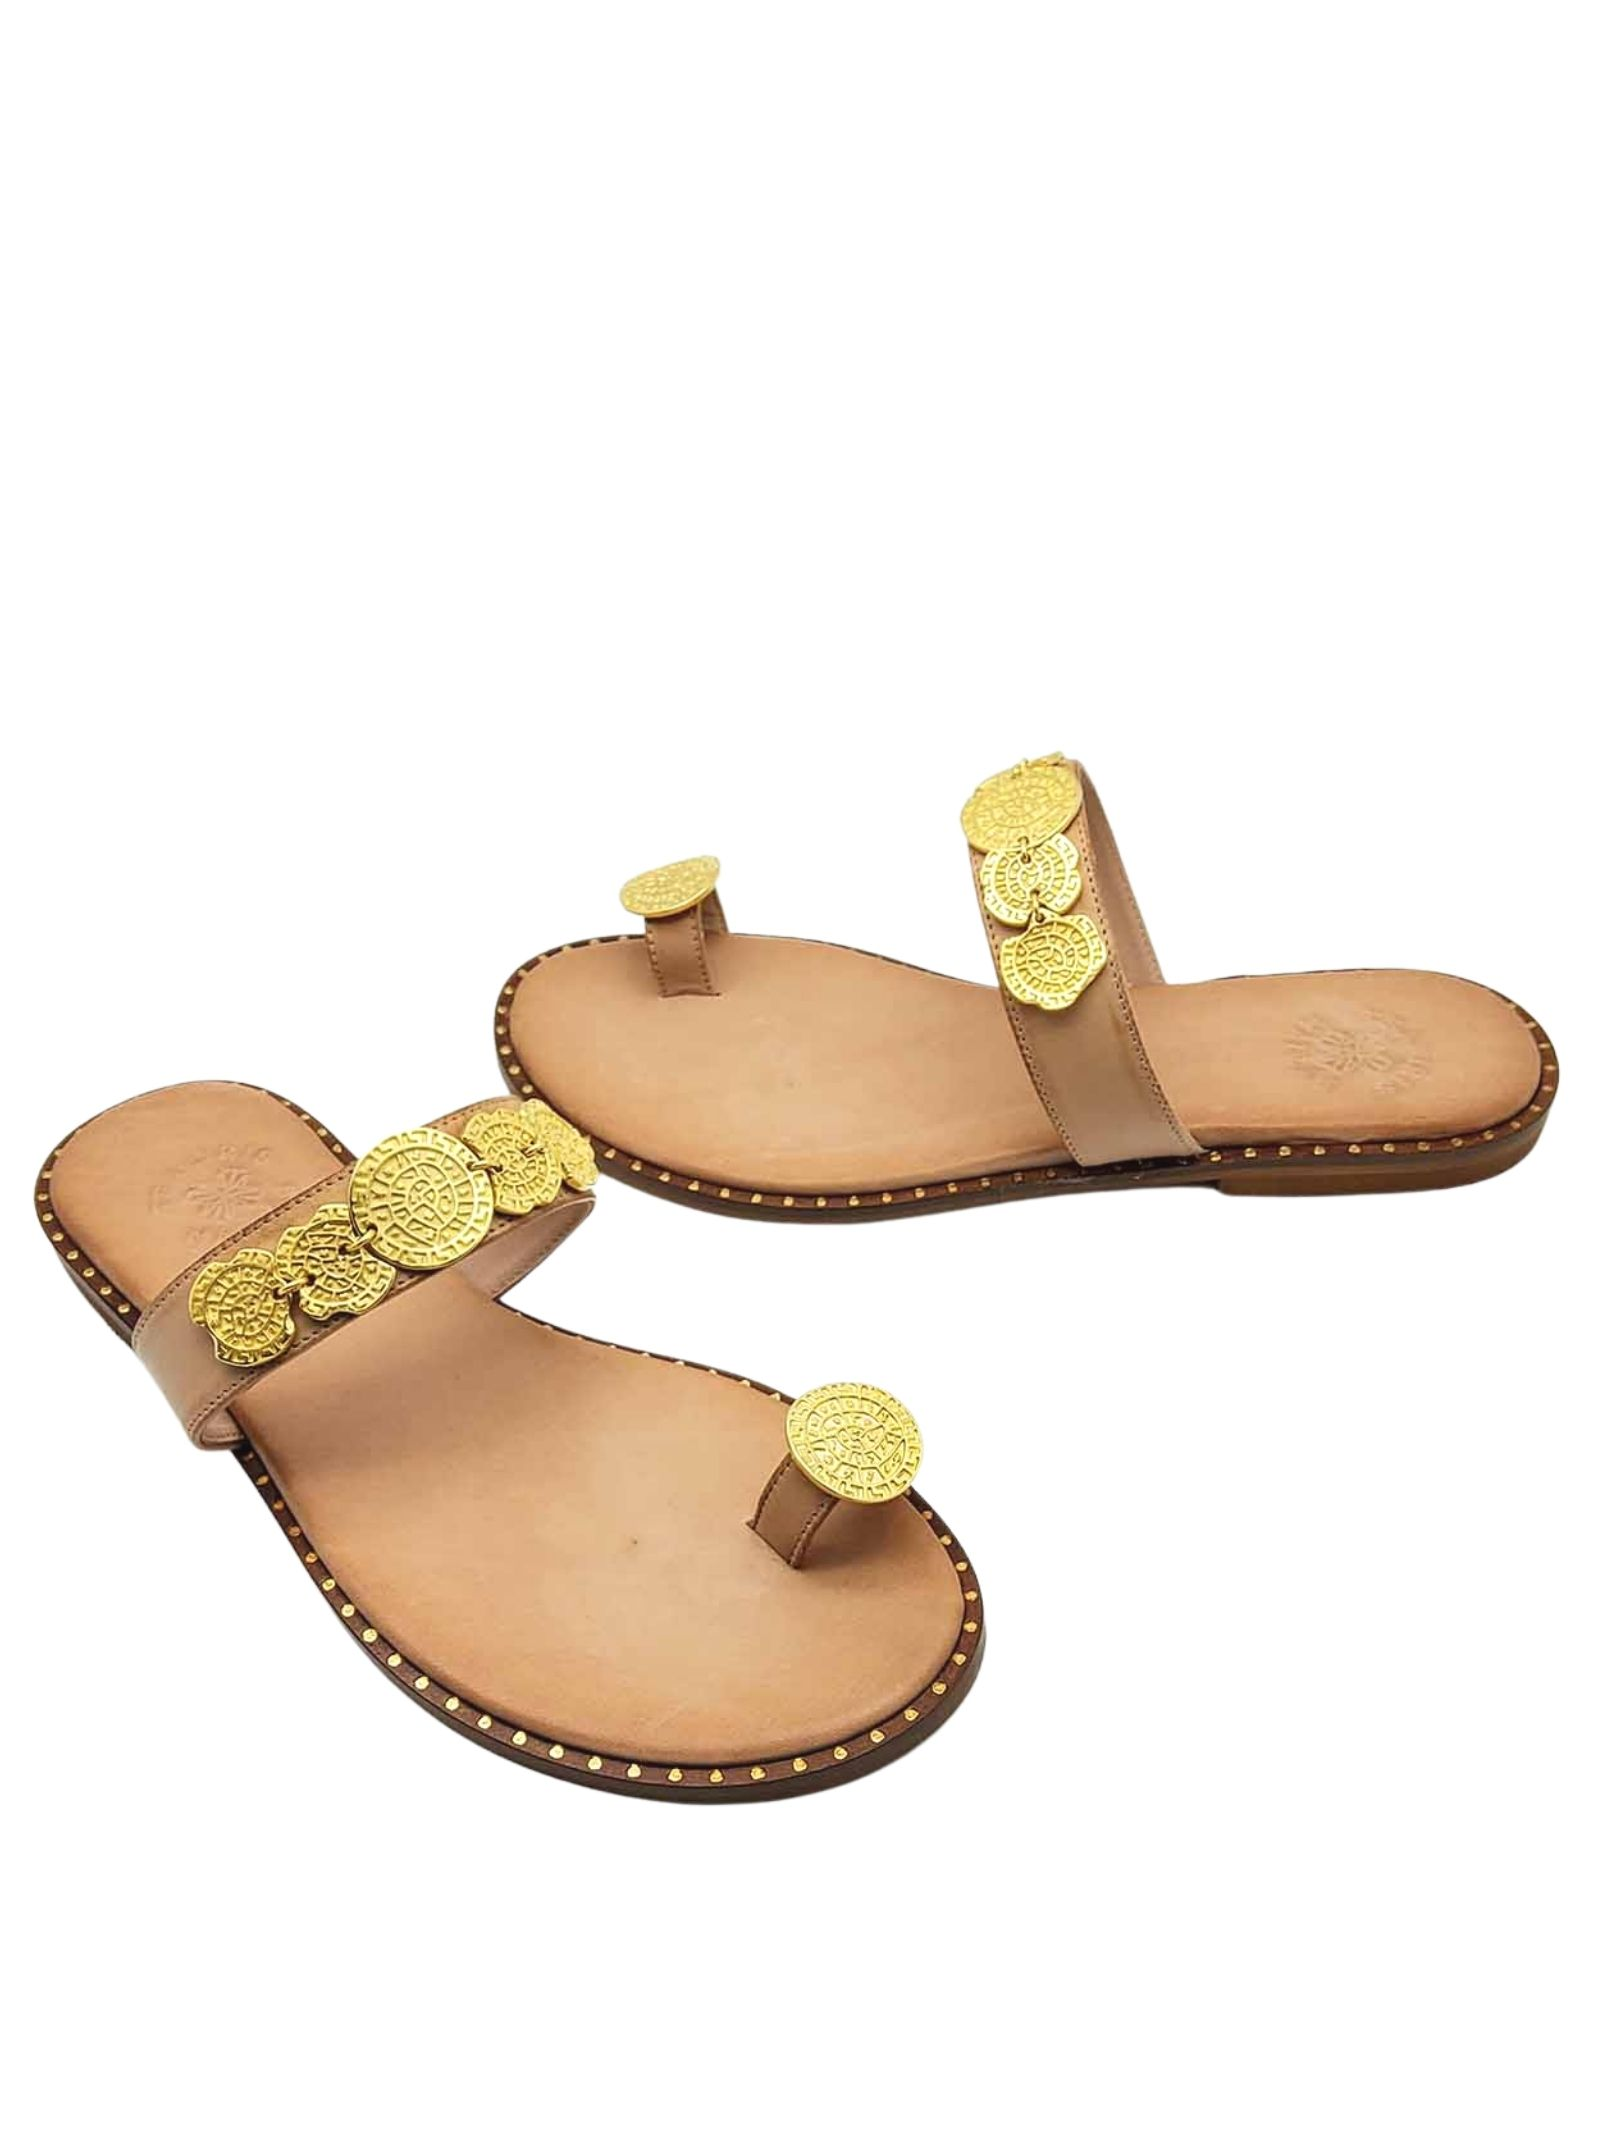 Women's Shoes Flat Flip Flops Sandals in Natural Leather with Gold Accessories and Rubber Bottom Exe | Flat sandals | 602013